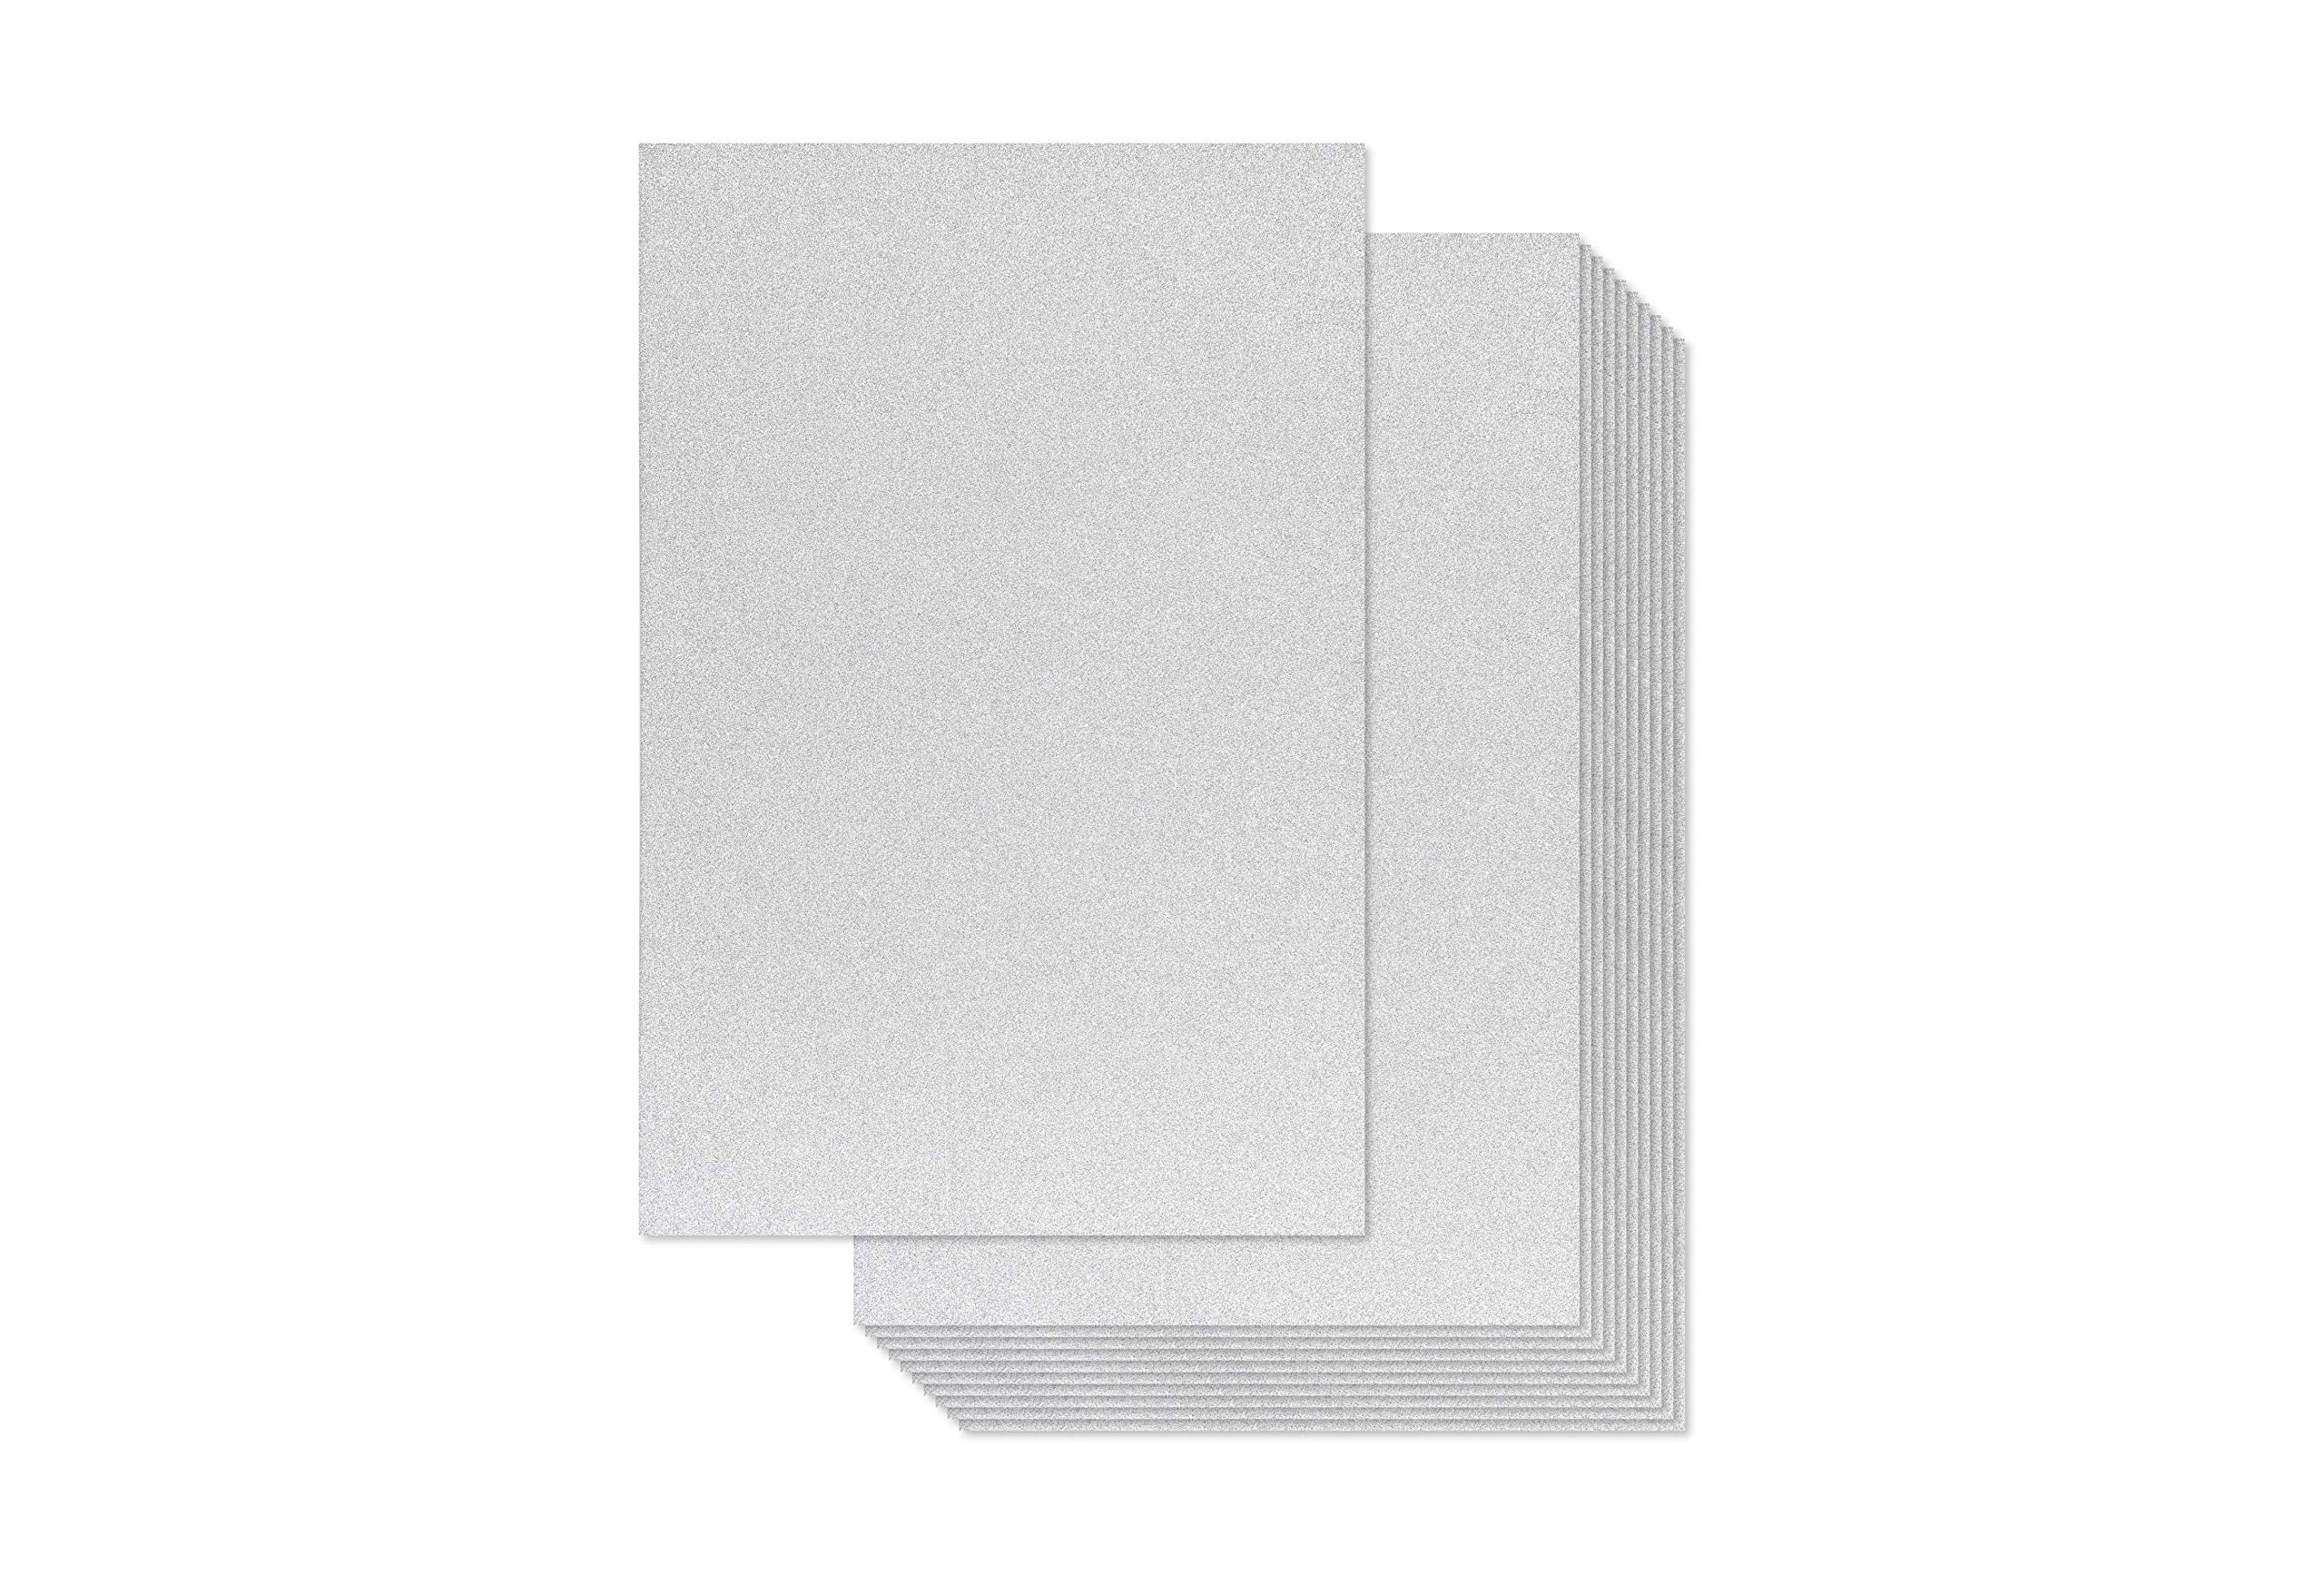 Bright Creations Glitter Cardstock Paper 24 Pack DIY Glitter Craft Paper White 11 x 8.5 inches